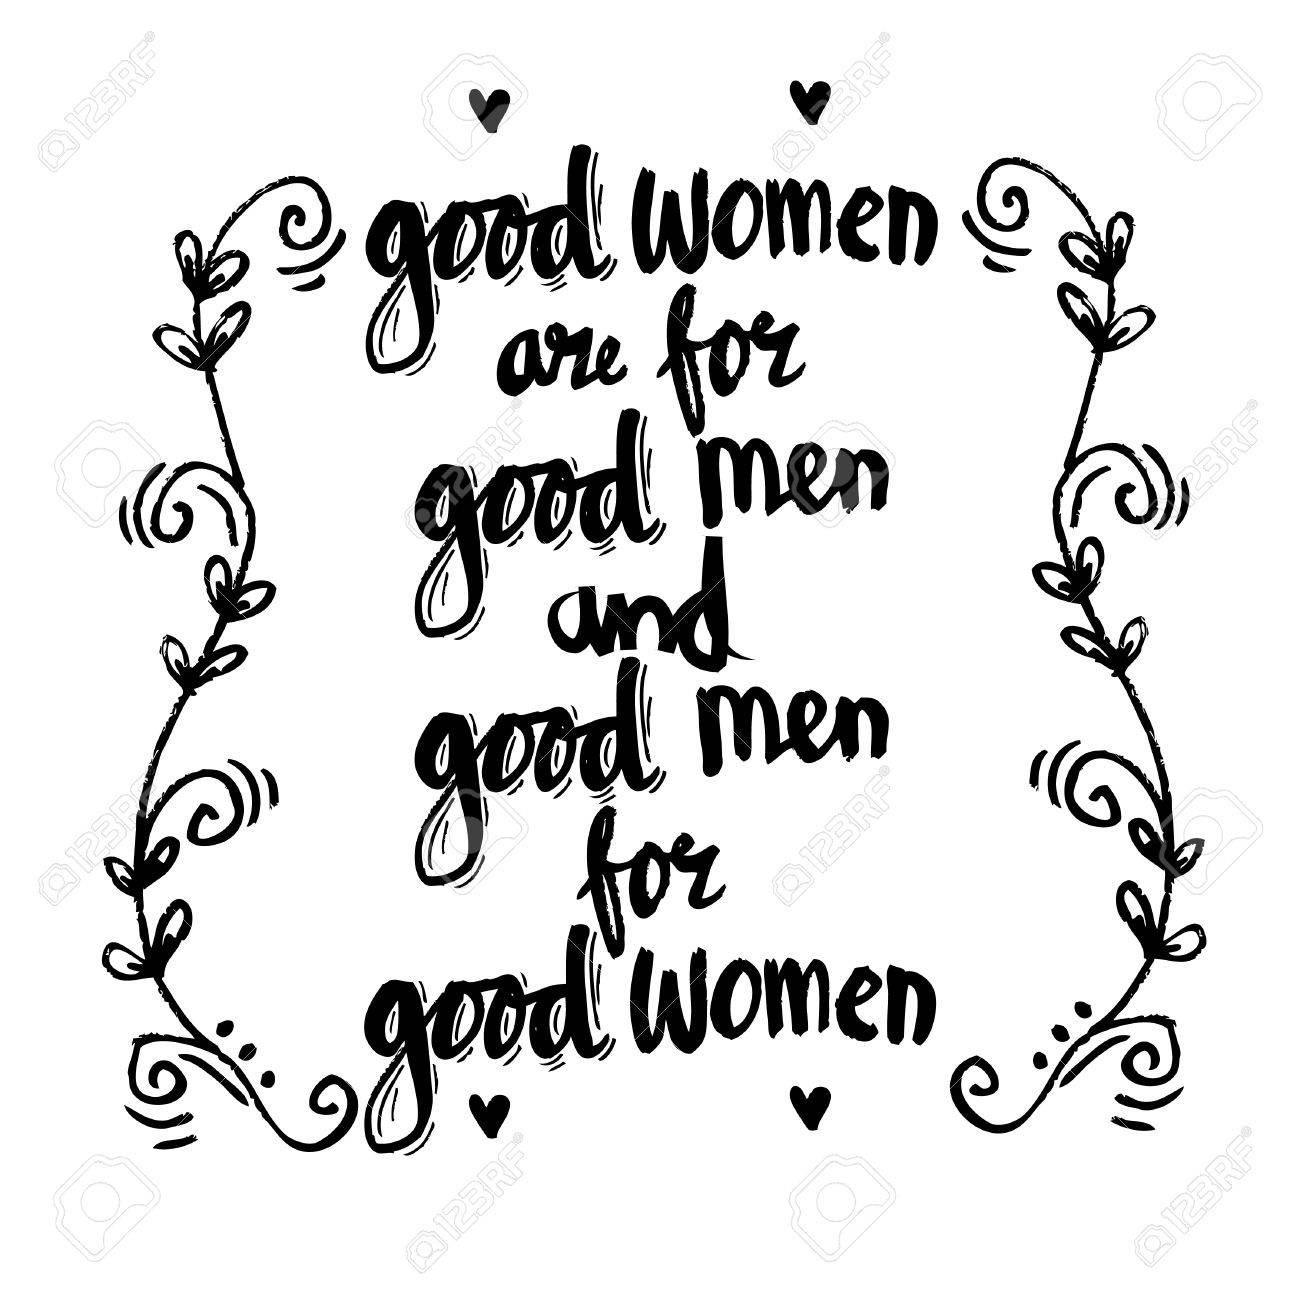 Stock illustration 3d red text quot yes quot stock illustration royalty - Friendship Quotes Good Women Are For Good Men And Good Men For Good Womwn